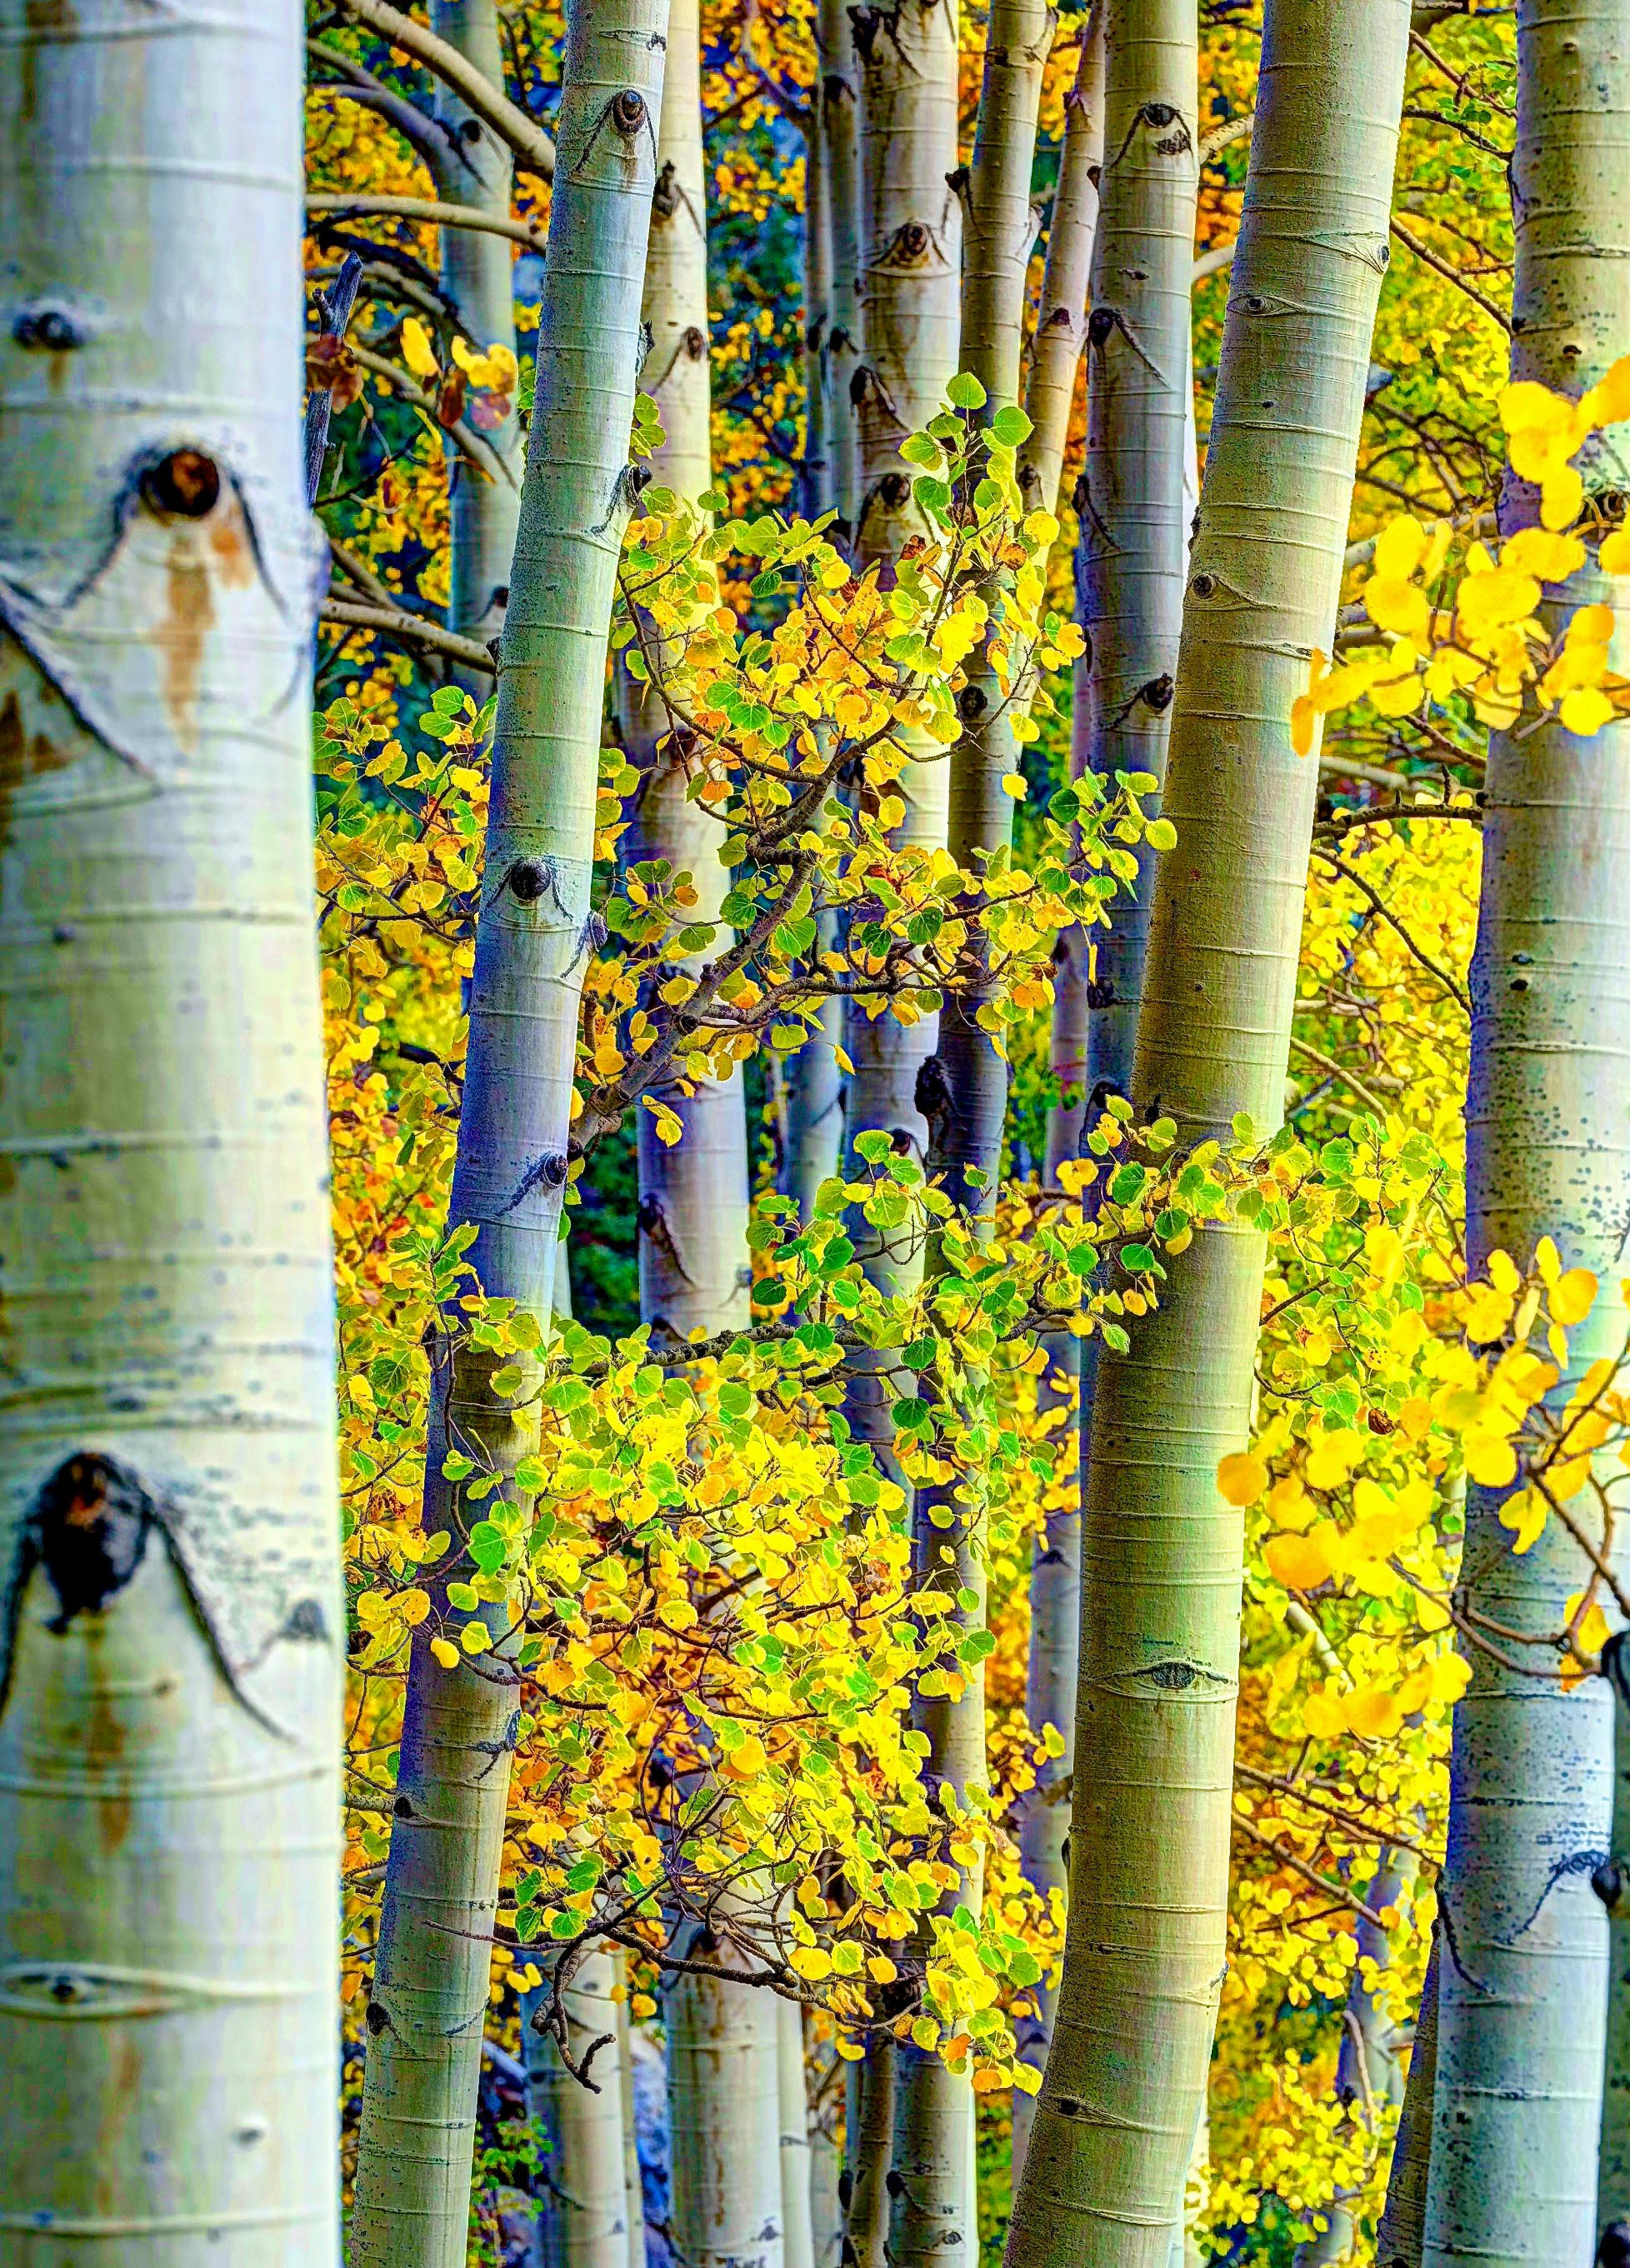 Yellow aspen leaves and trunks, photo